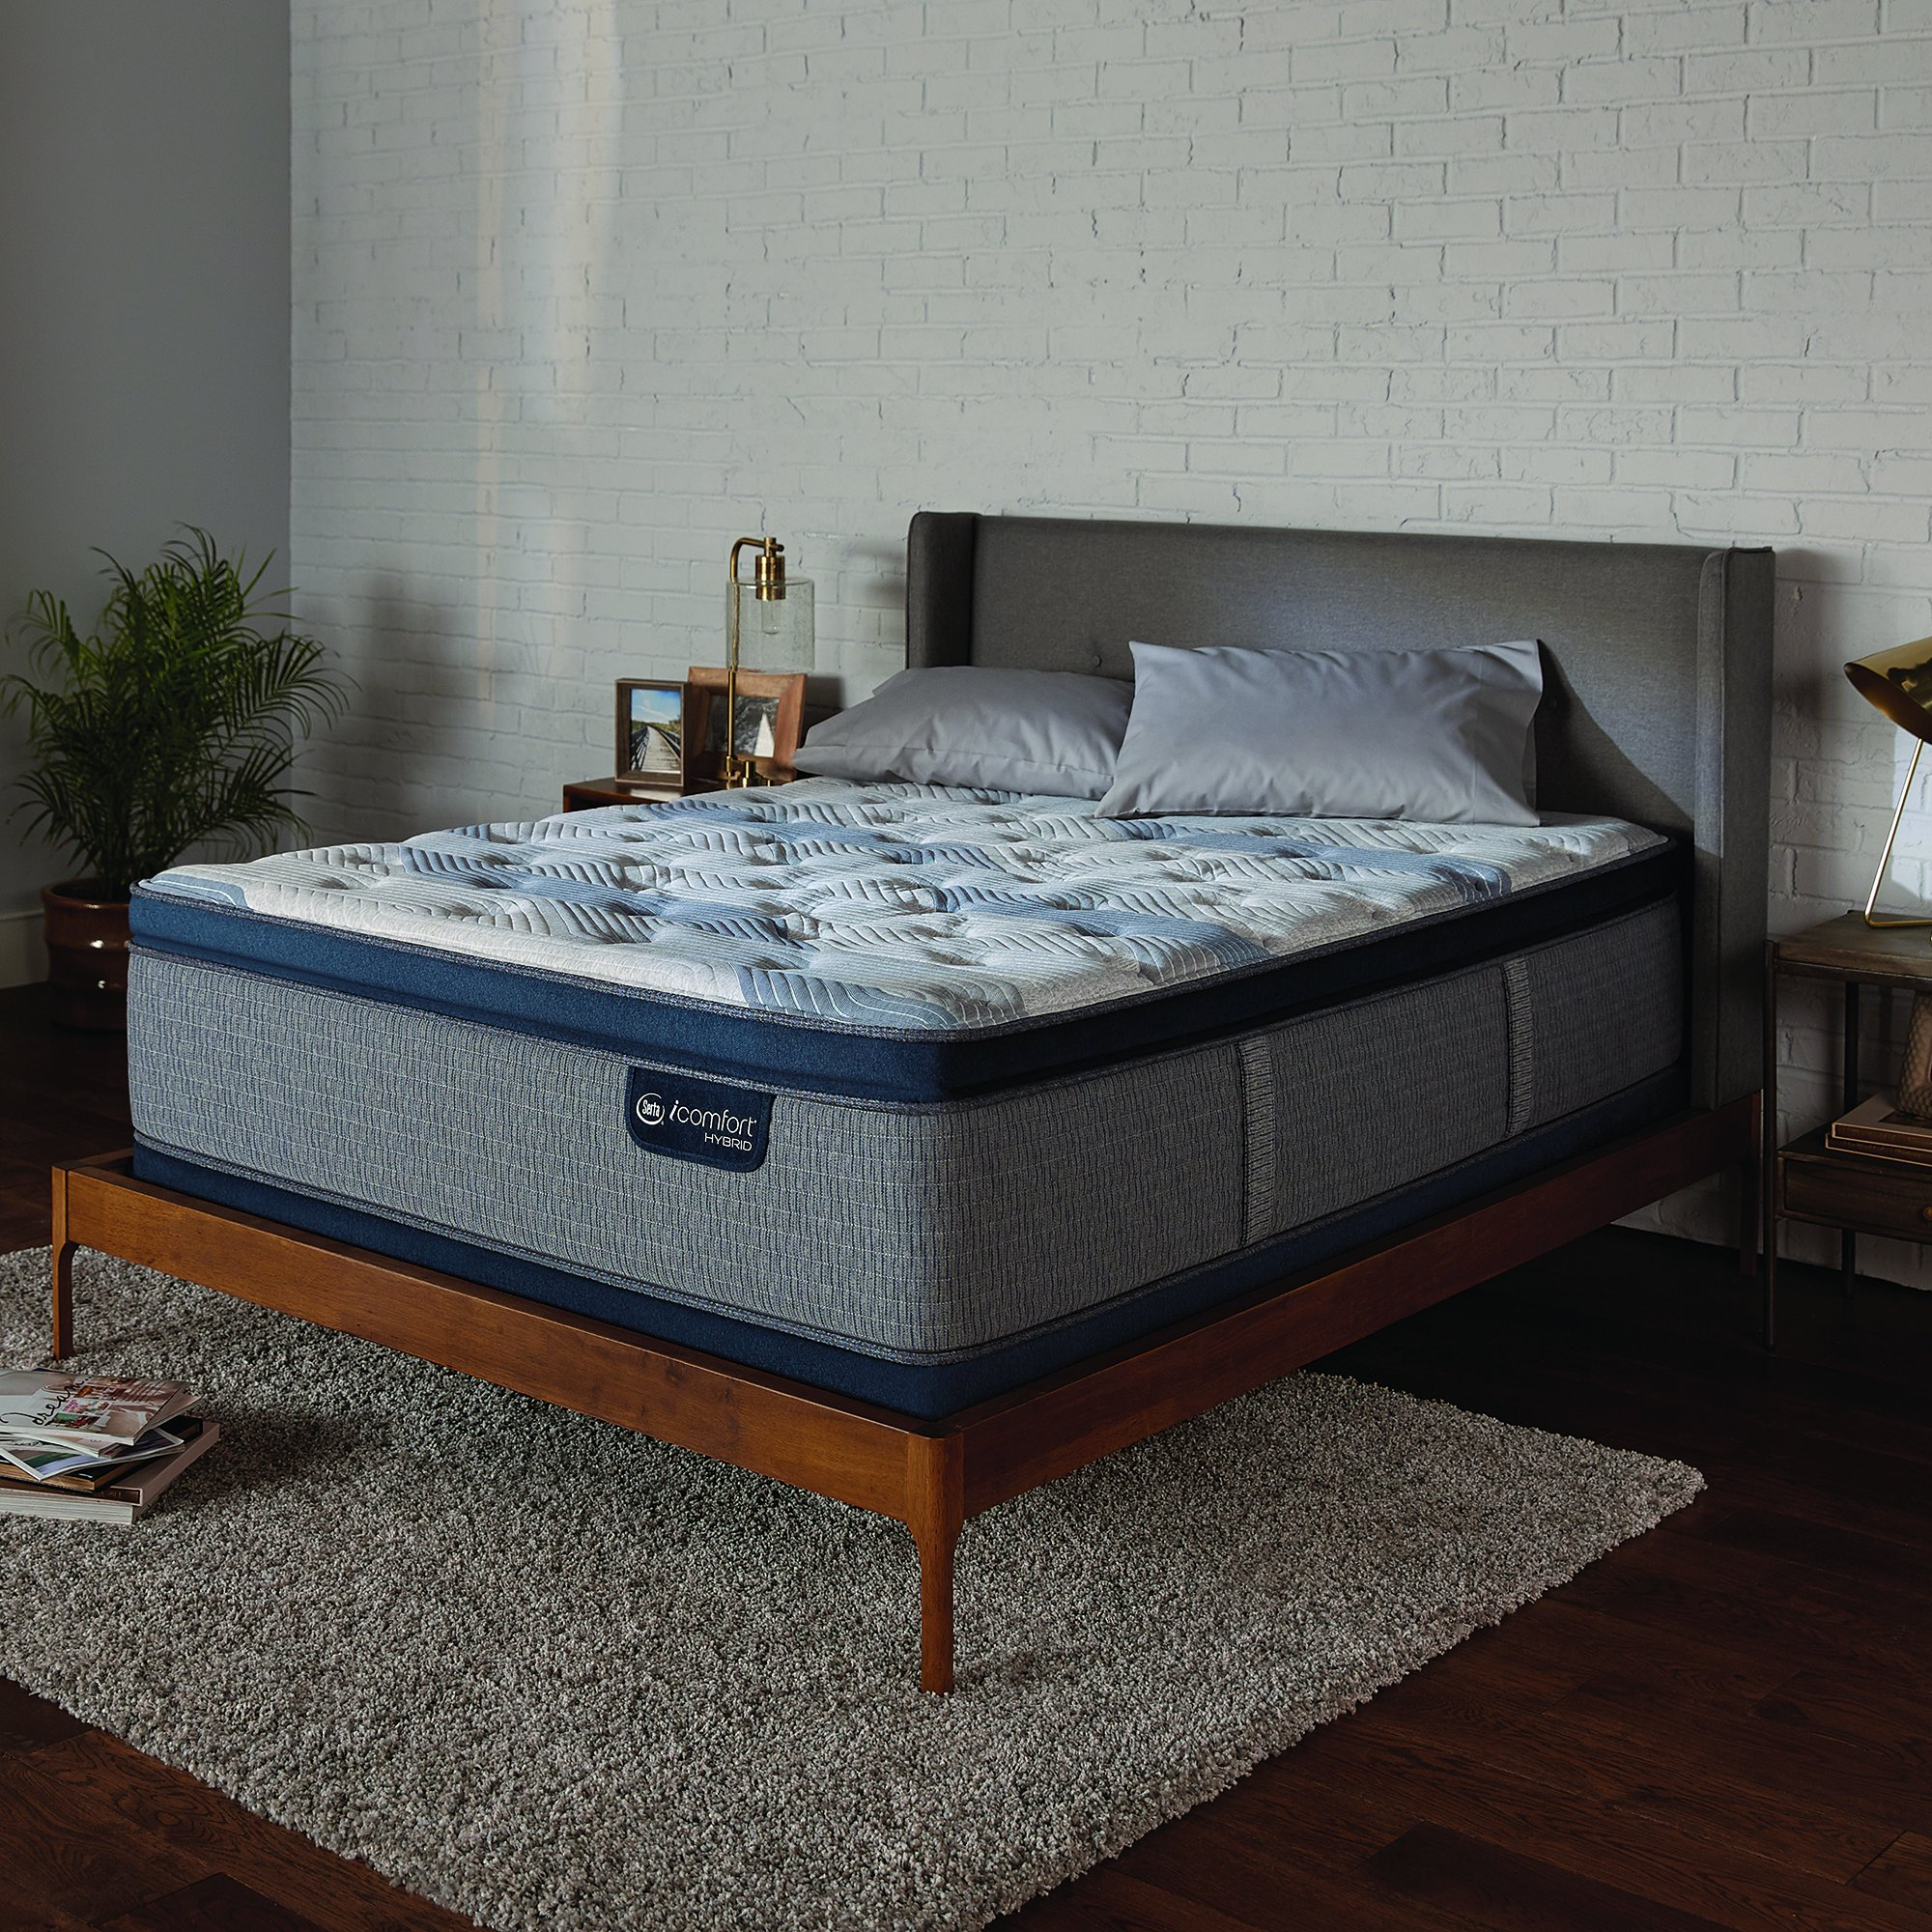 Serta Icomfort Hybrid Bed Mattress Conventional, King, Gray by Serta